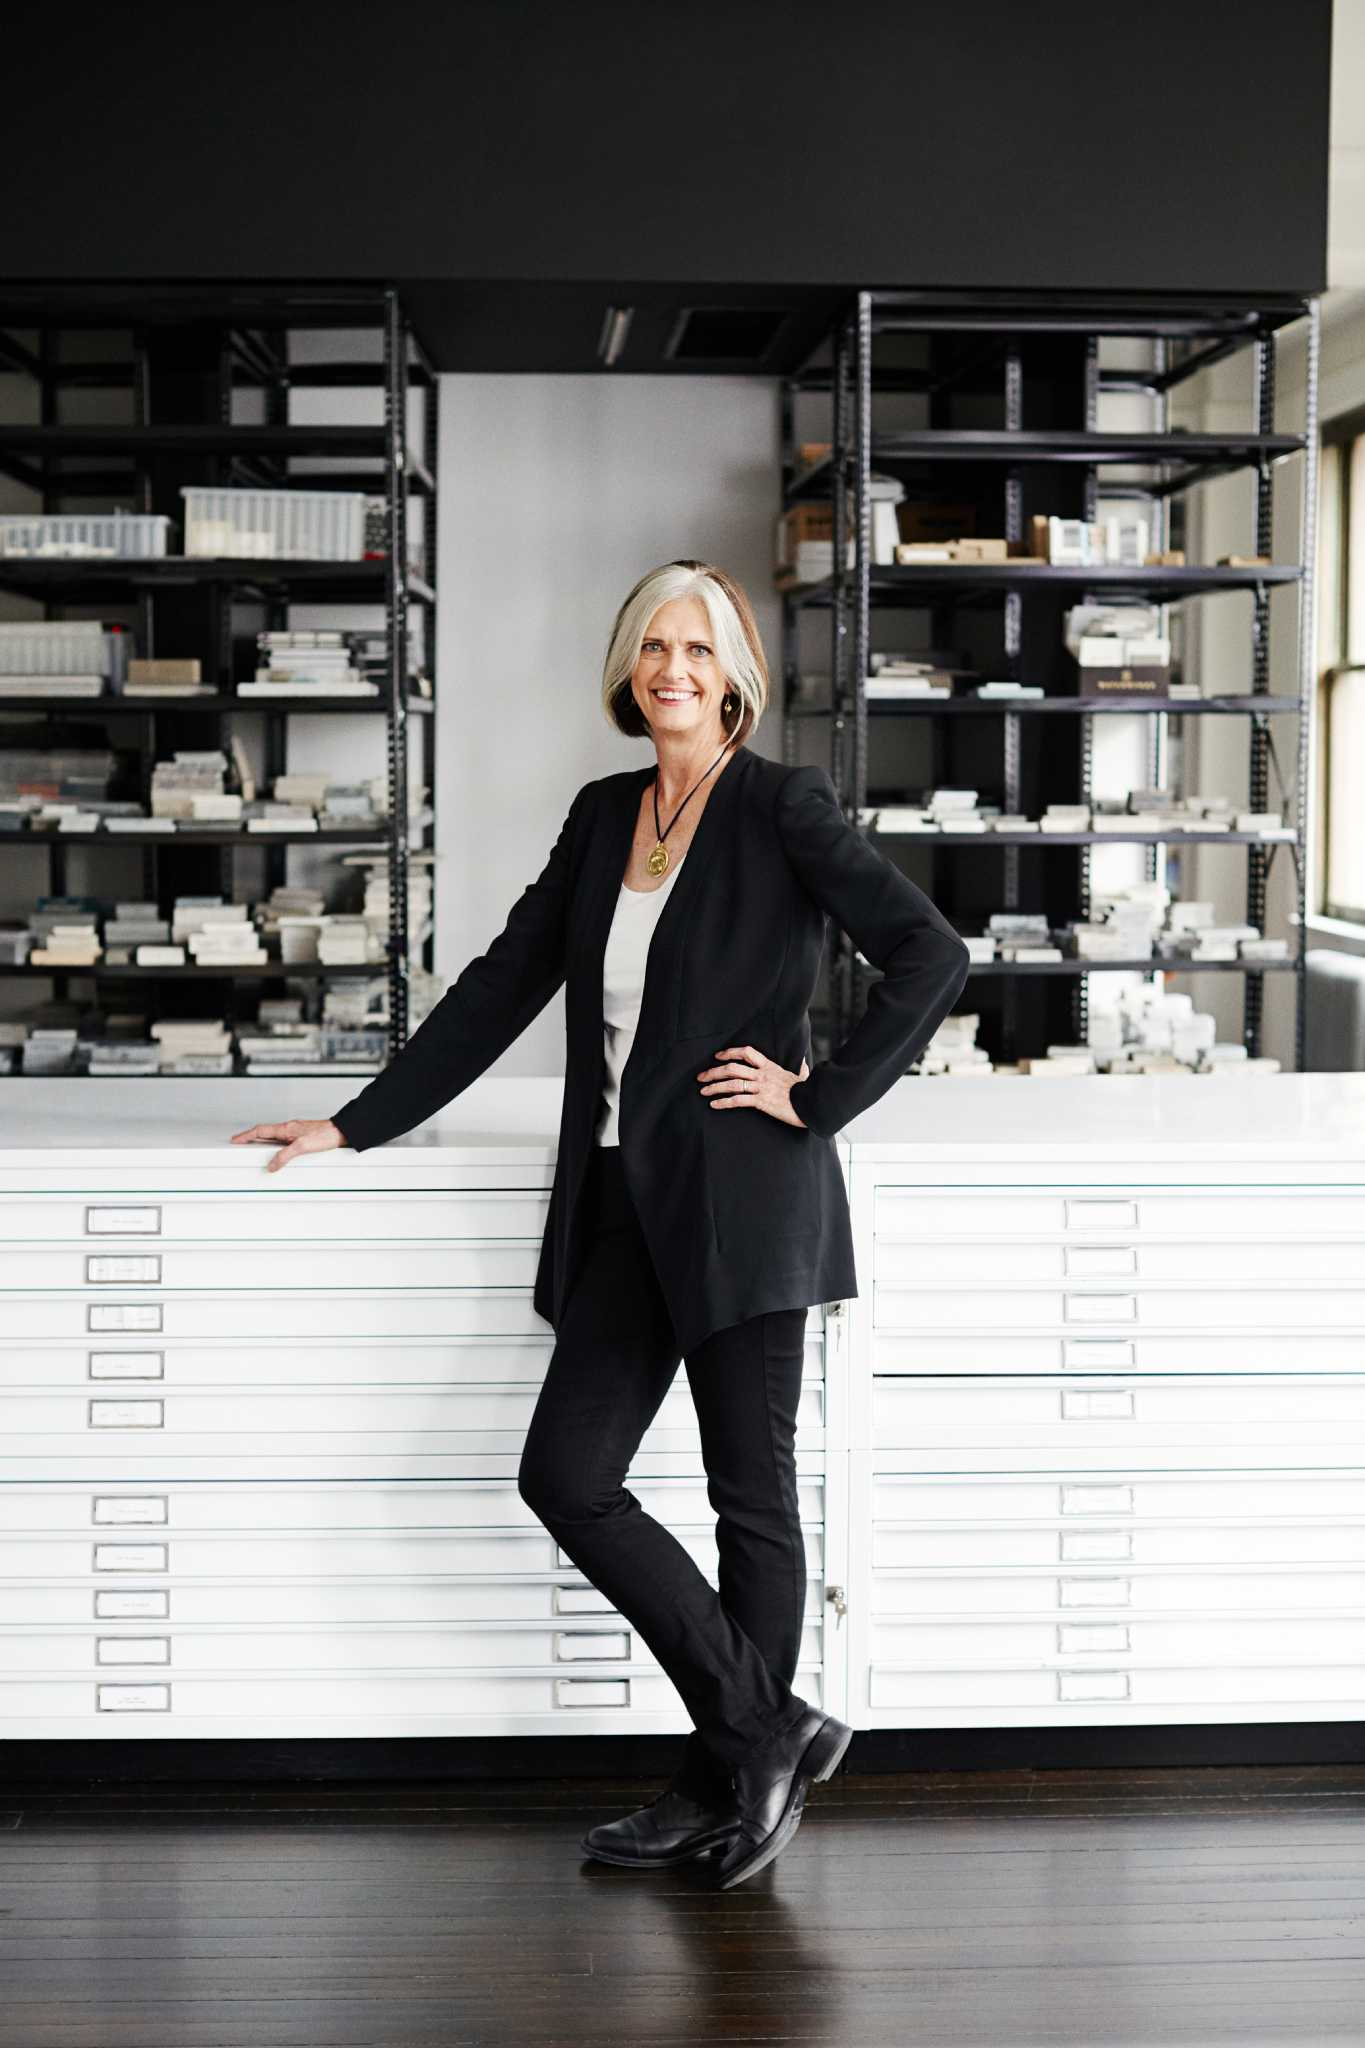 deborah berke becomes the first woman dean of yale school of architecture connecticut post. Black Bedroom Furniture Sets. Home Design Ideas